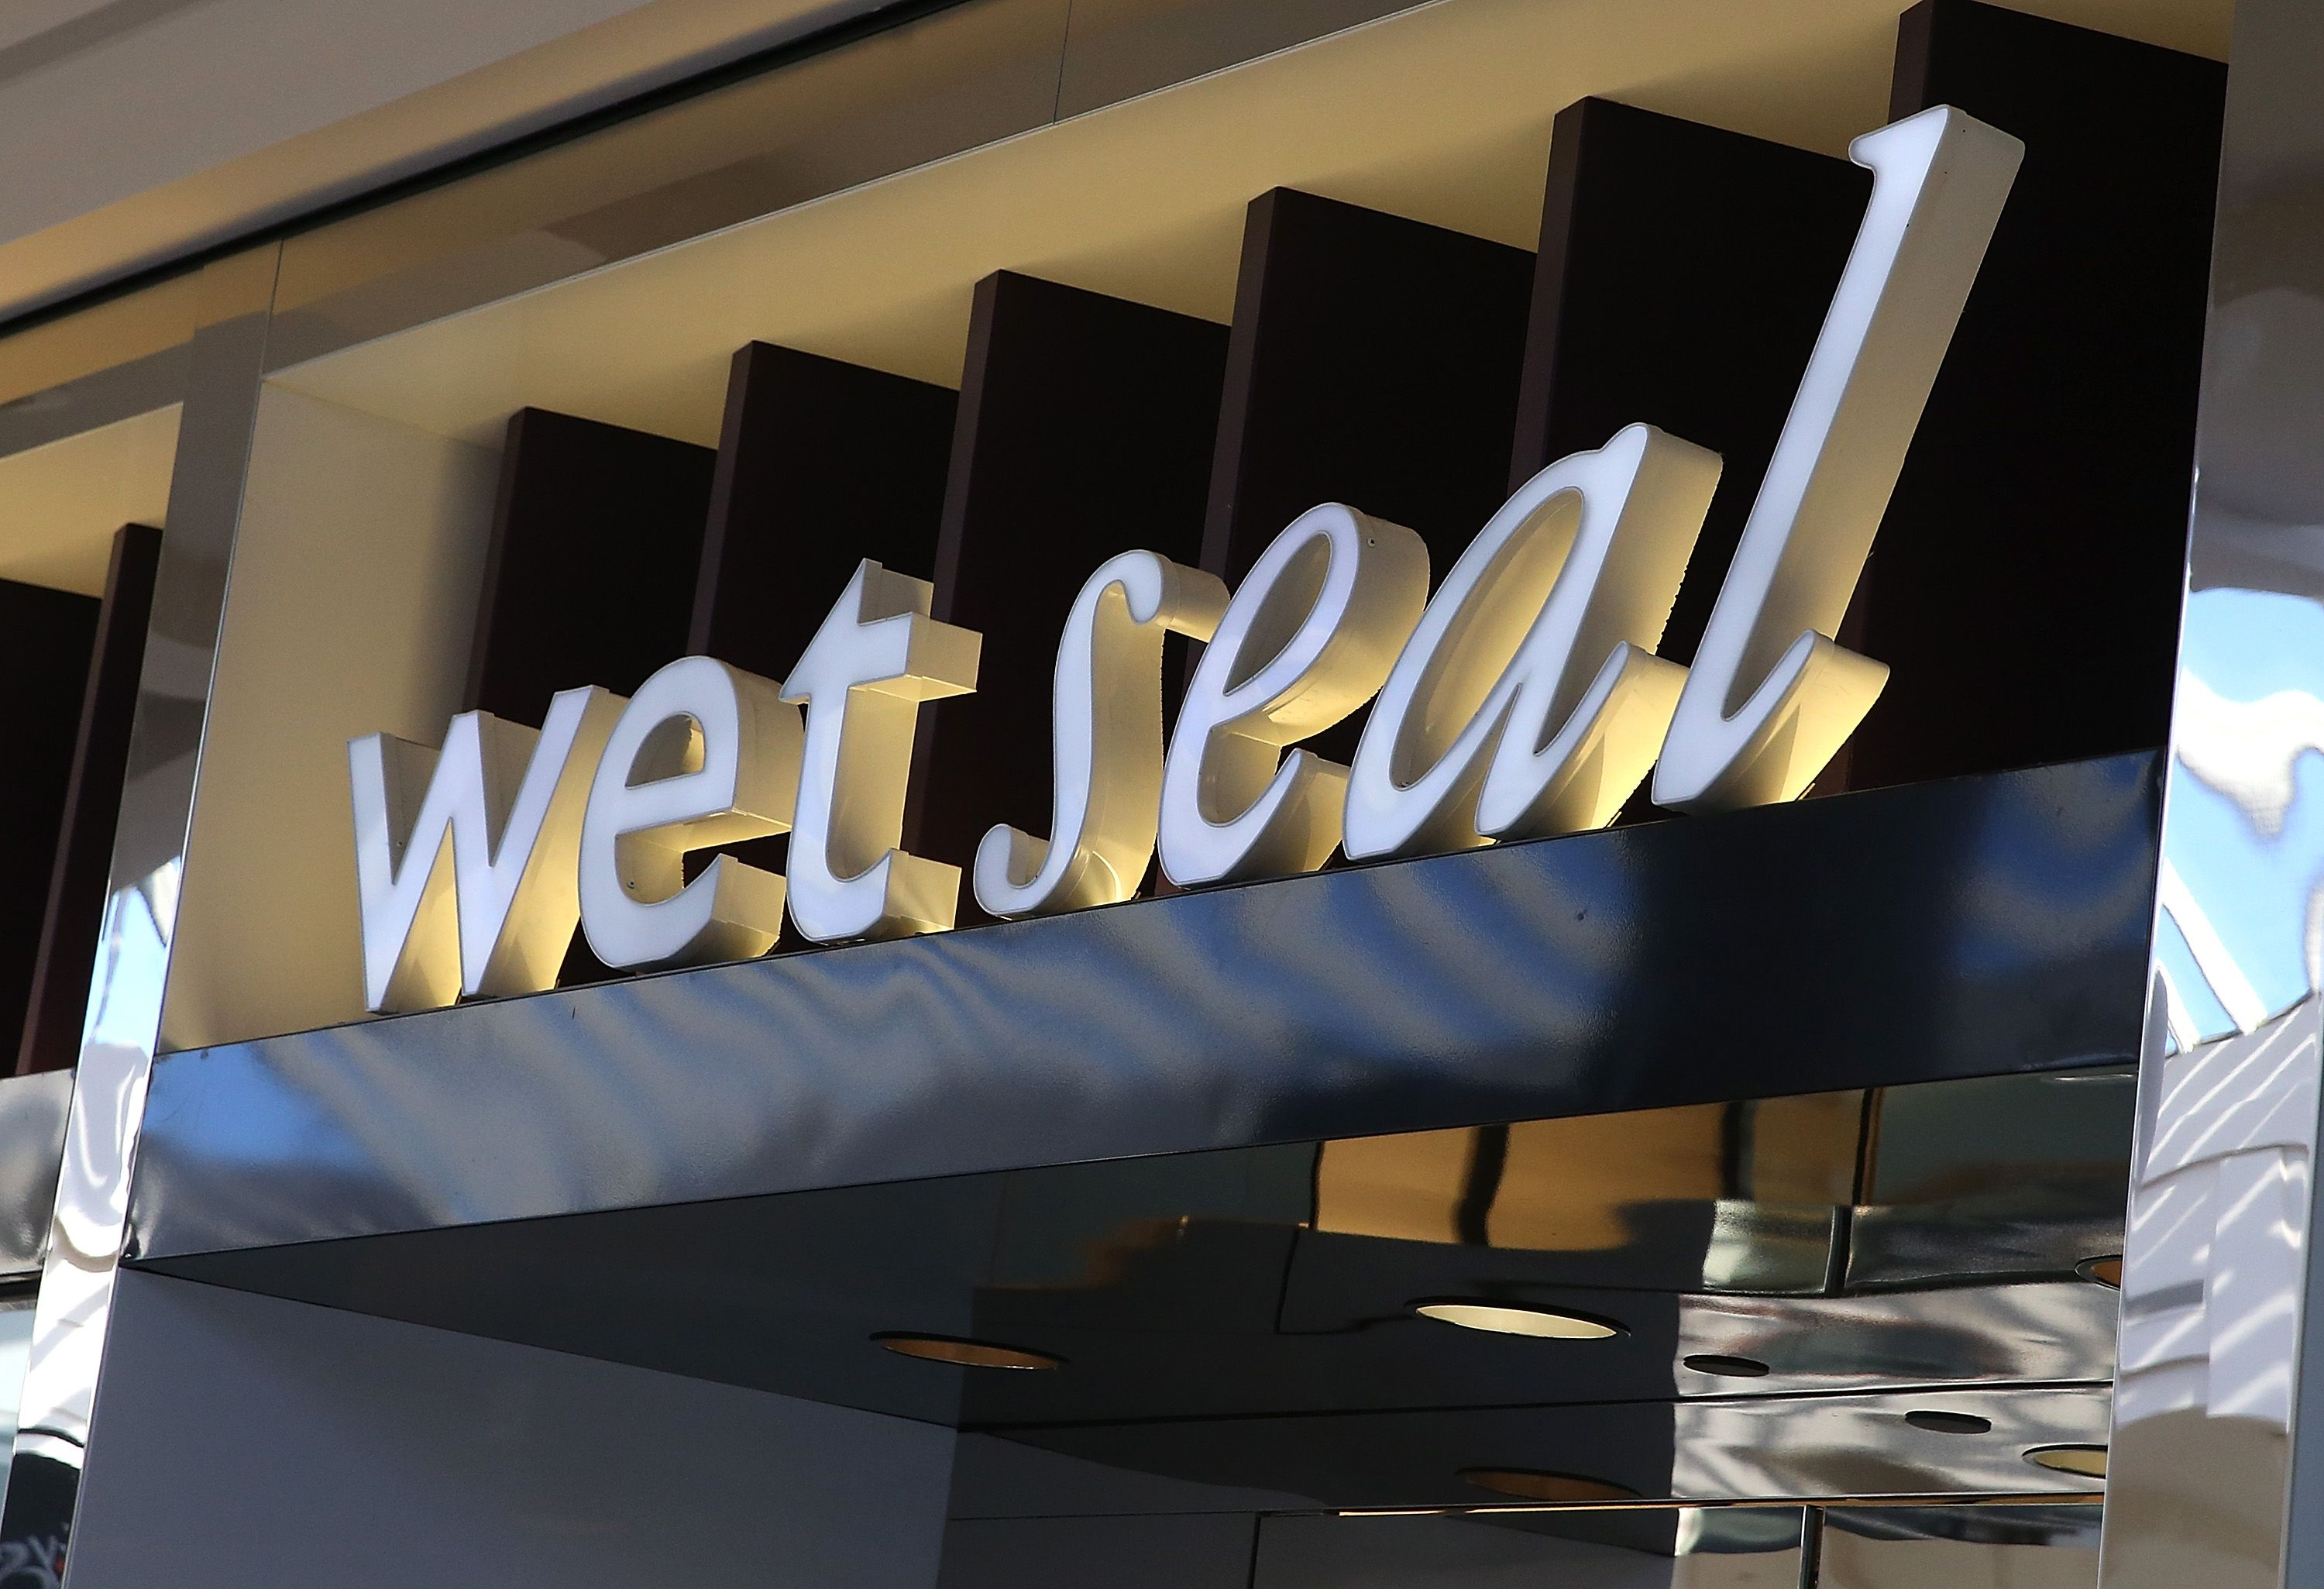 c074113556 22 Things From Wet Seal You Definitely Owned at One Point in Your Life